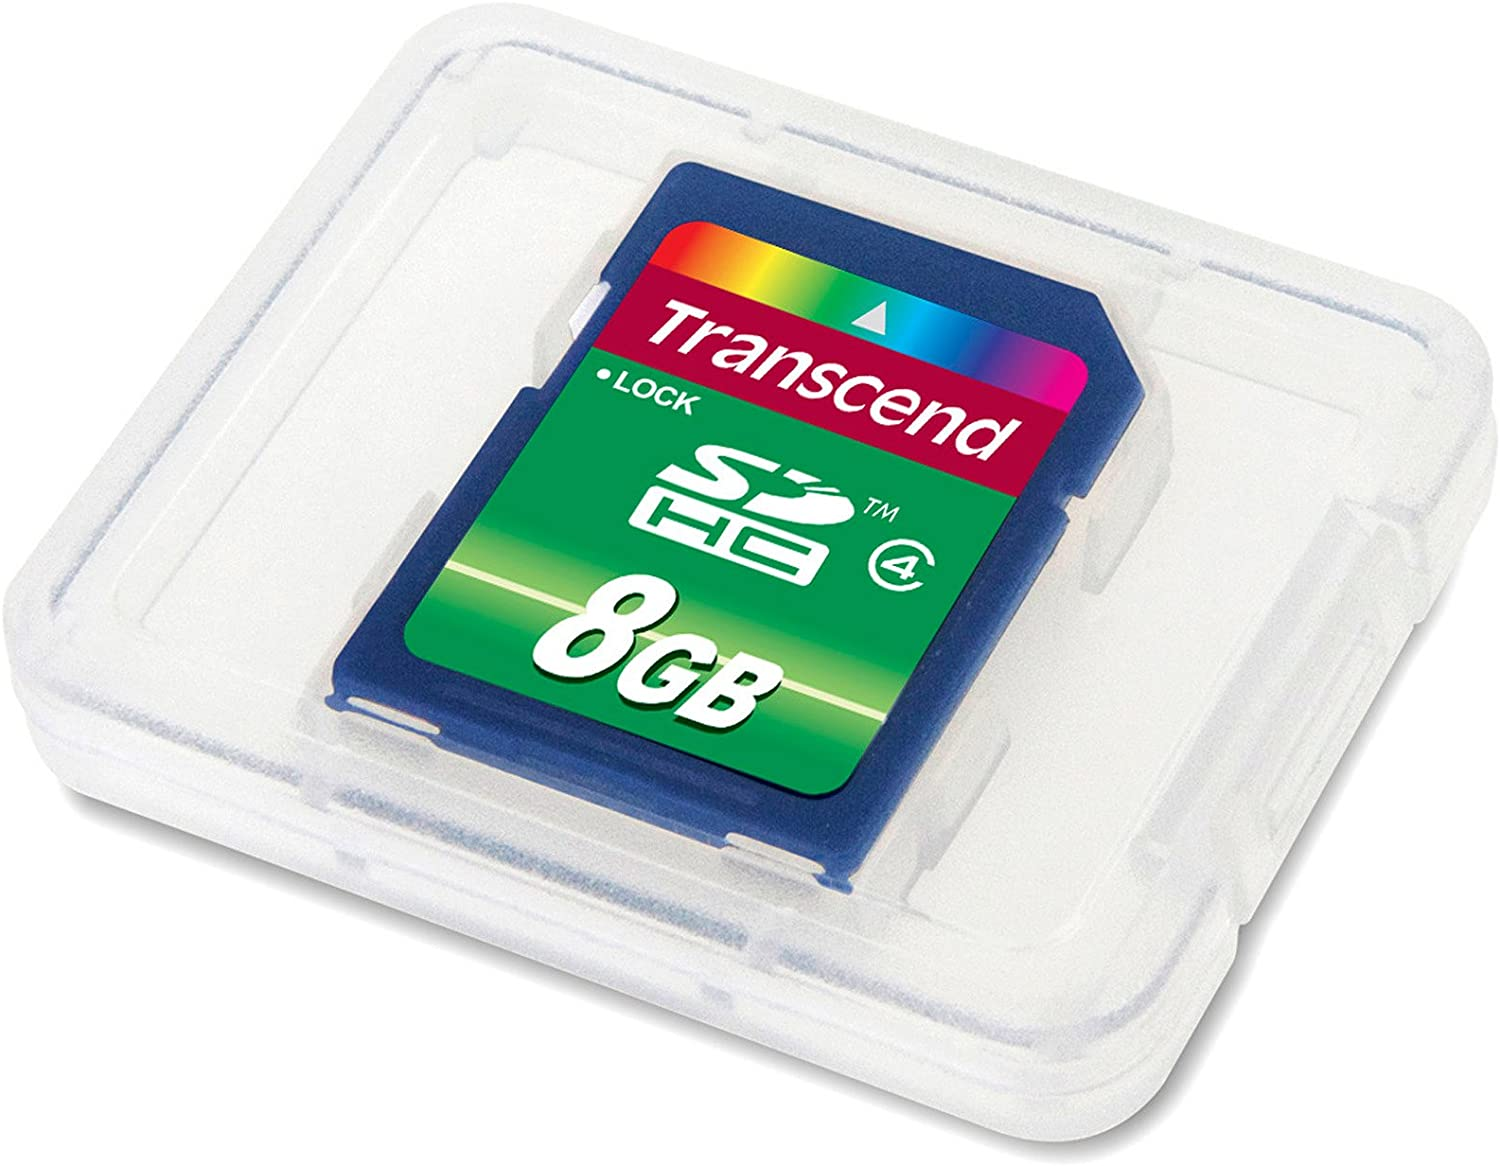 Transcend 64gb Ultimate Sdxc Uhs Ultra High Speed Class Computers Accessories